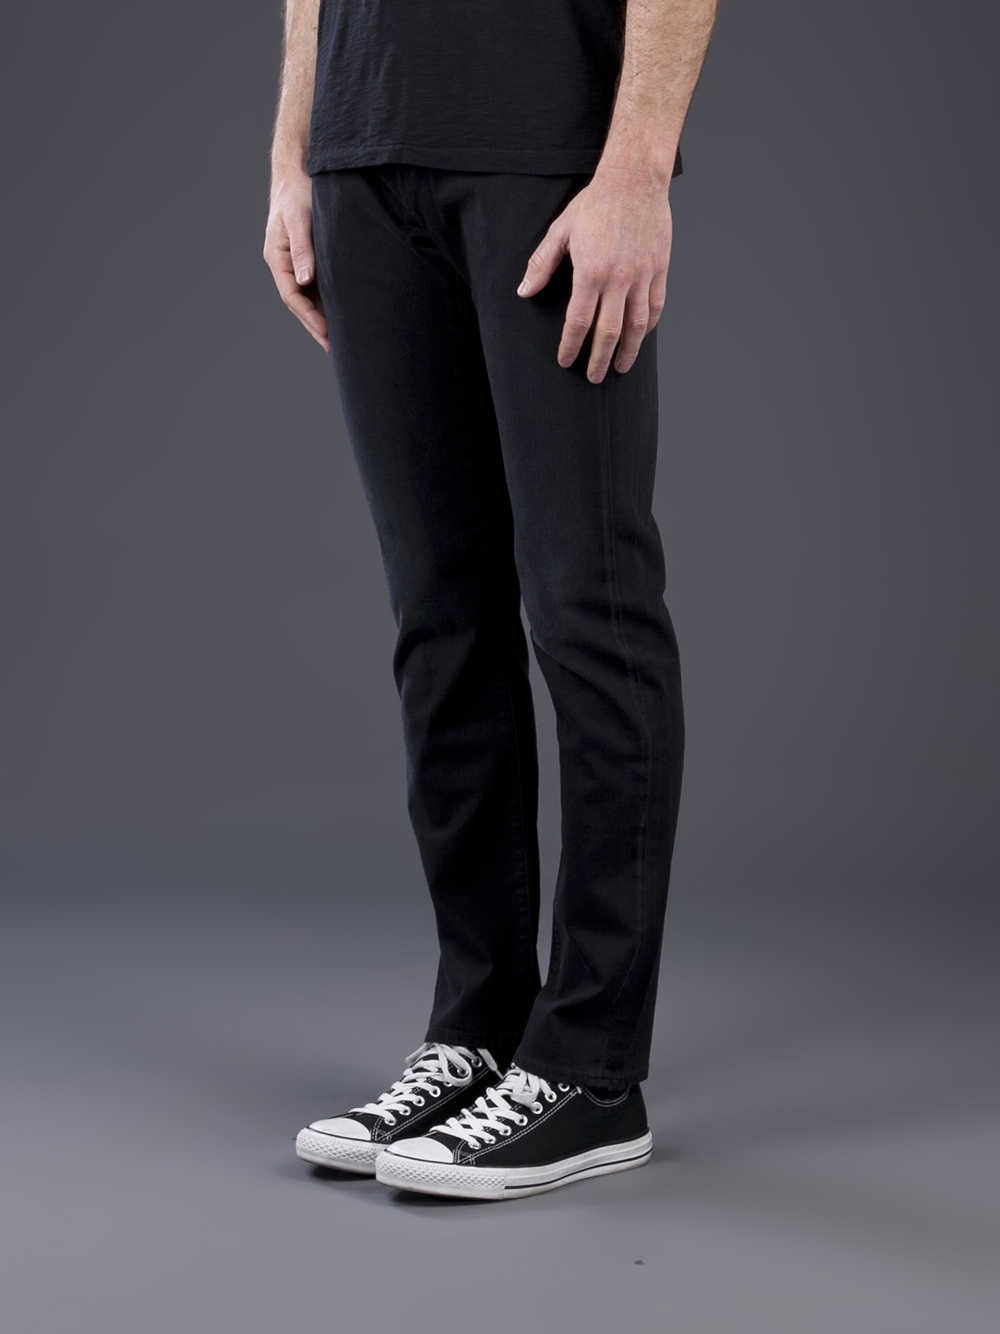 Slim Fit Jeans Black - Jeans Am